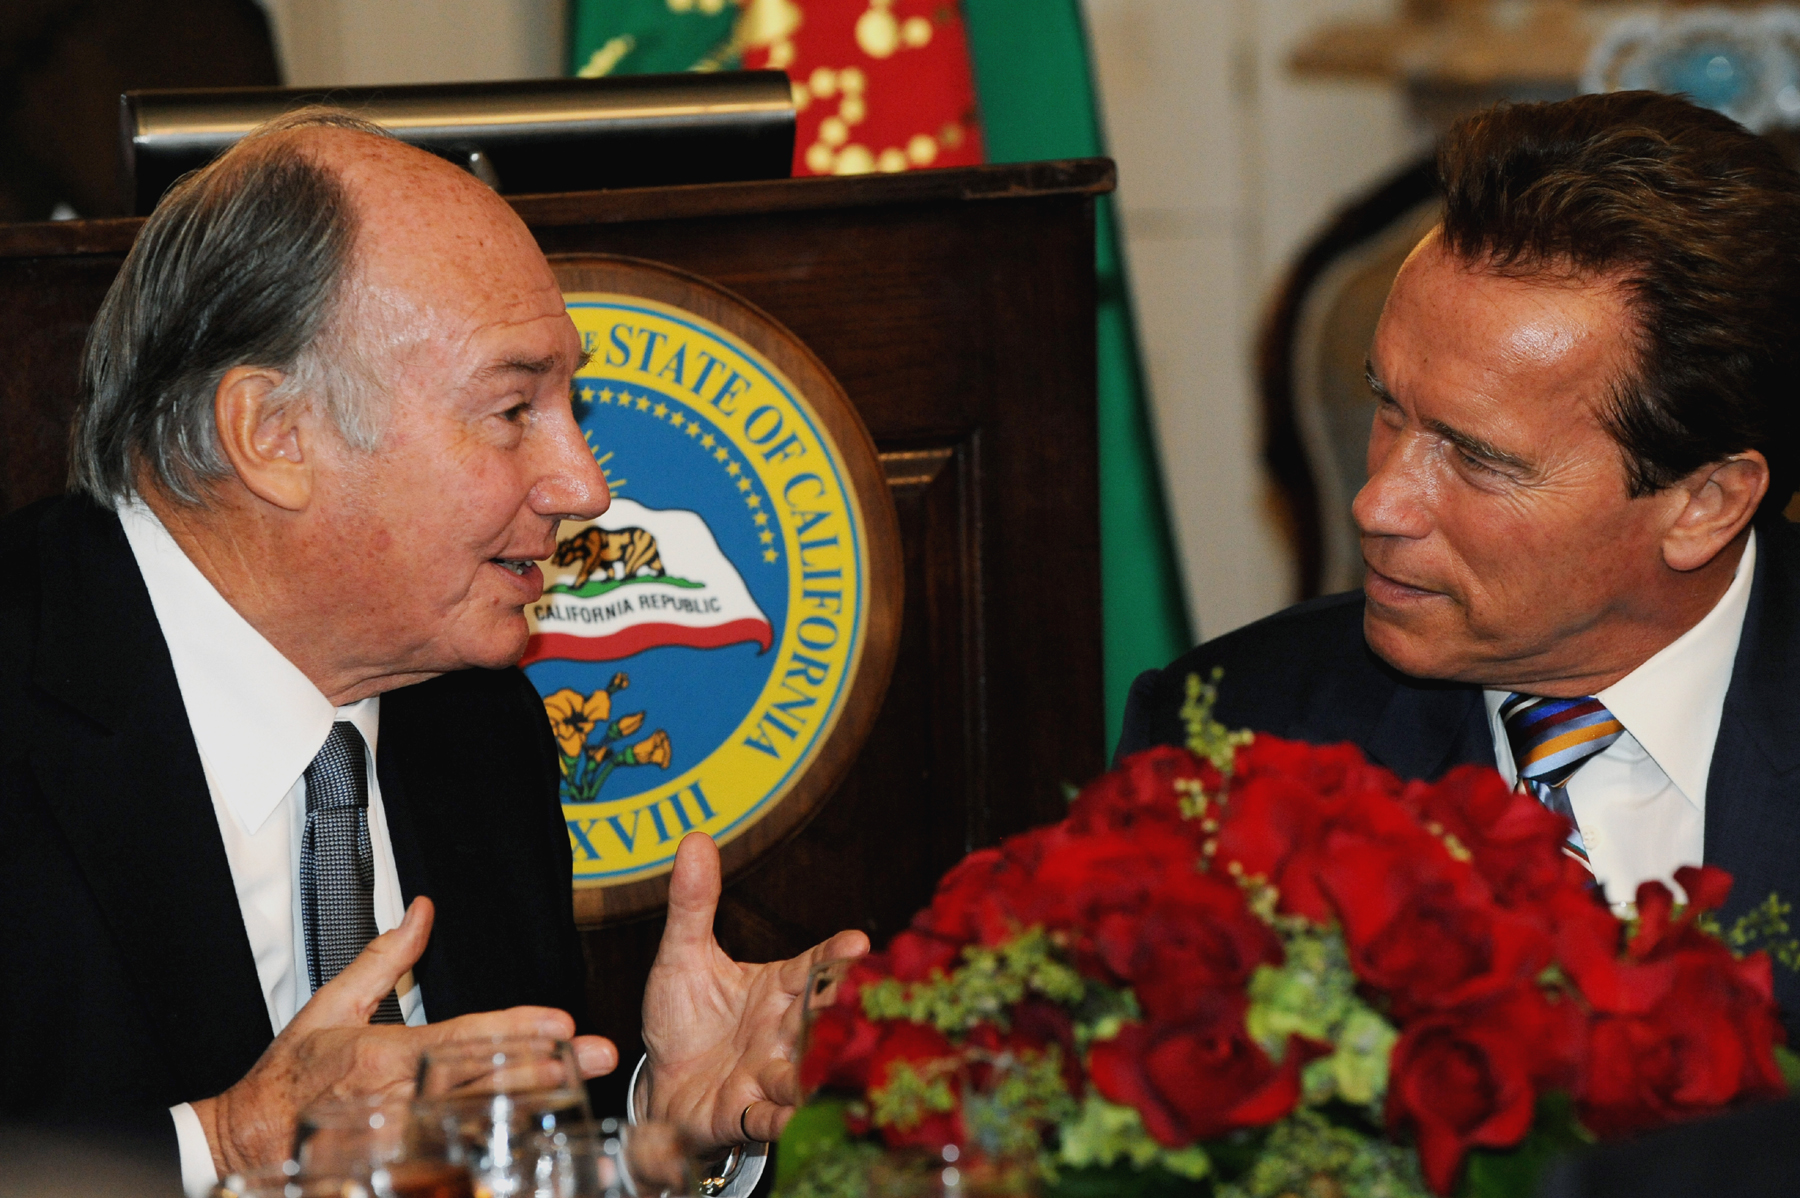 Mawlana Hazar Imam and Governor Schwarzenegger engaged in conversation during the luncheon at Stanford Mansion. Photo: Zahur Ramji